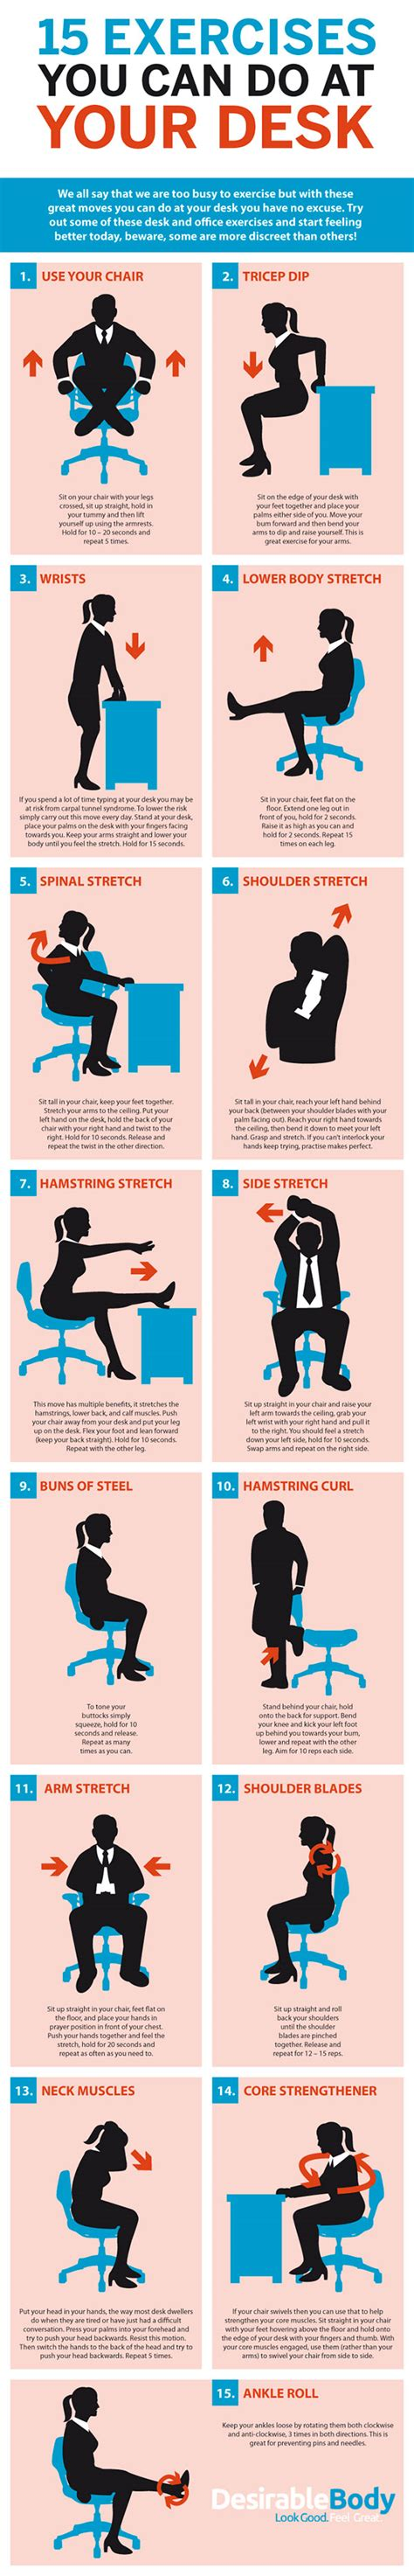 exercises to do at your desk with pictures deskercise 15 simple exercises you can do at your desk